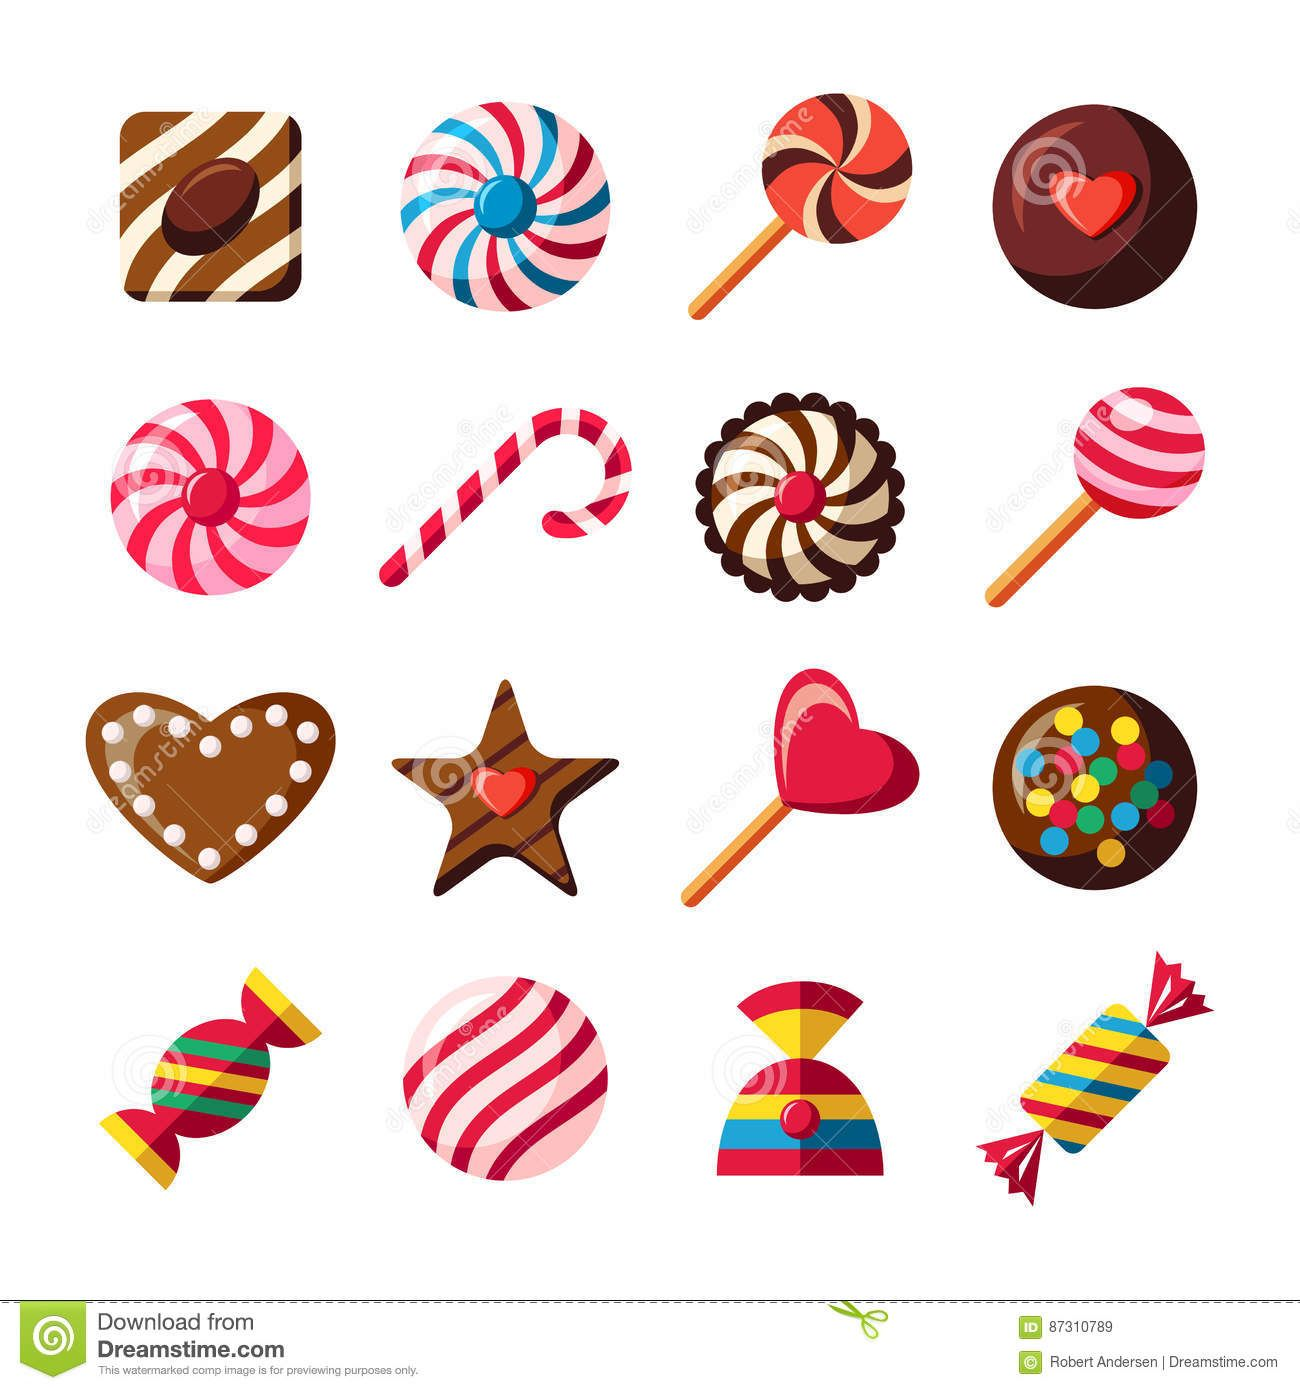 Chocolate clipart icons clip art freeuse Sweet Candy Icons, Chocolate Shapes, Vector Icons Set - Download ... clip art freeuse